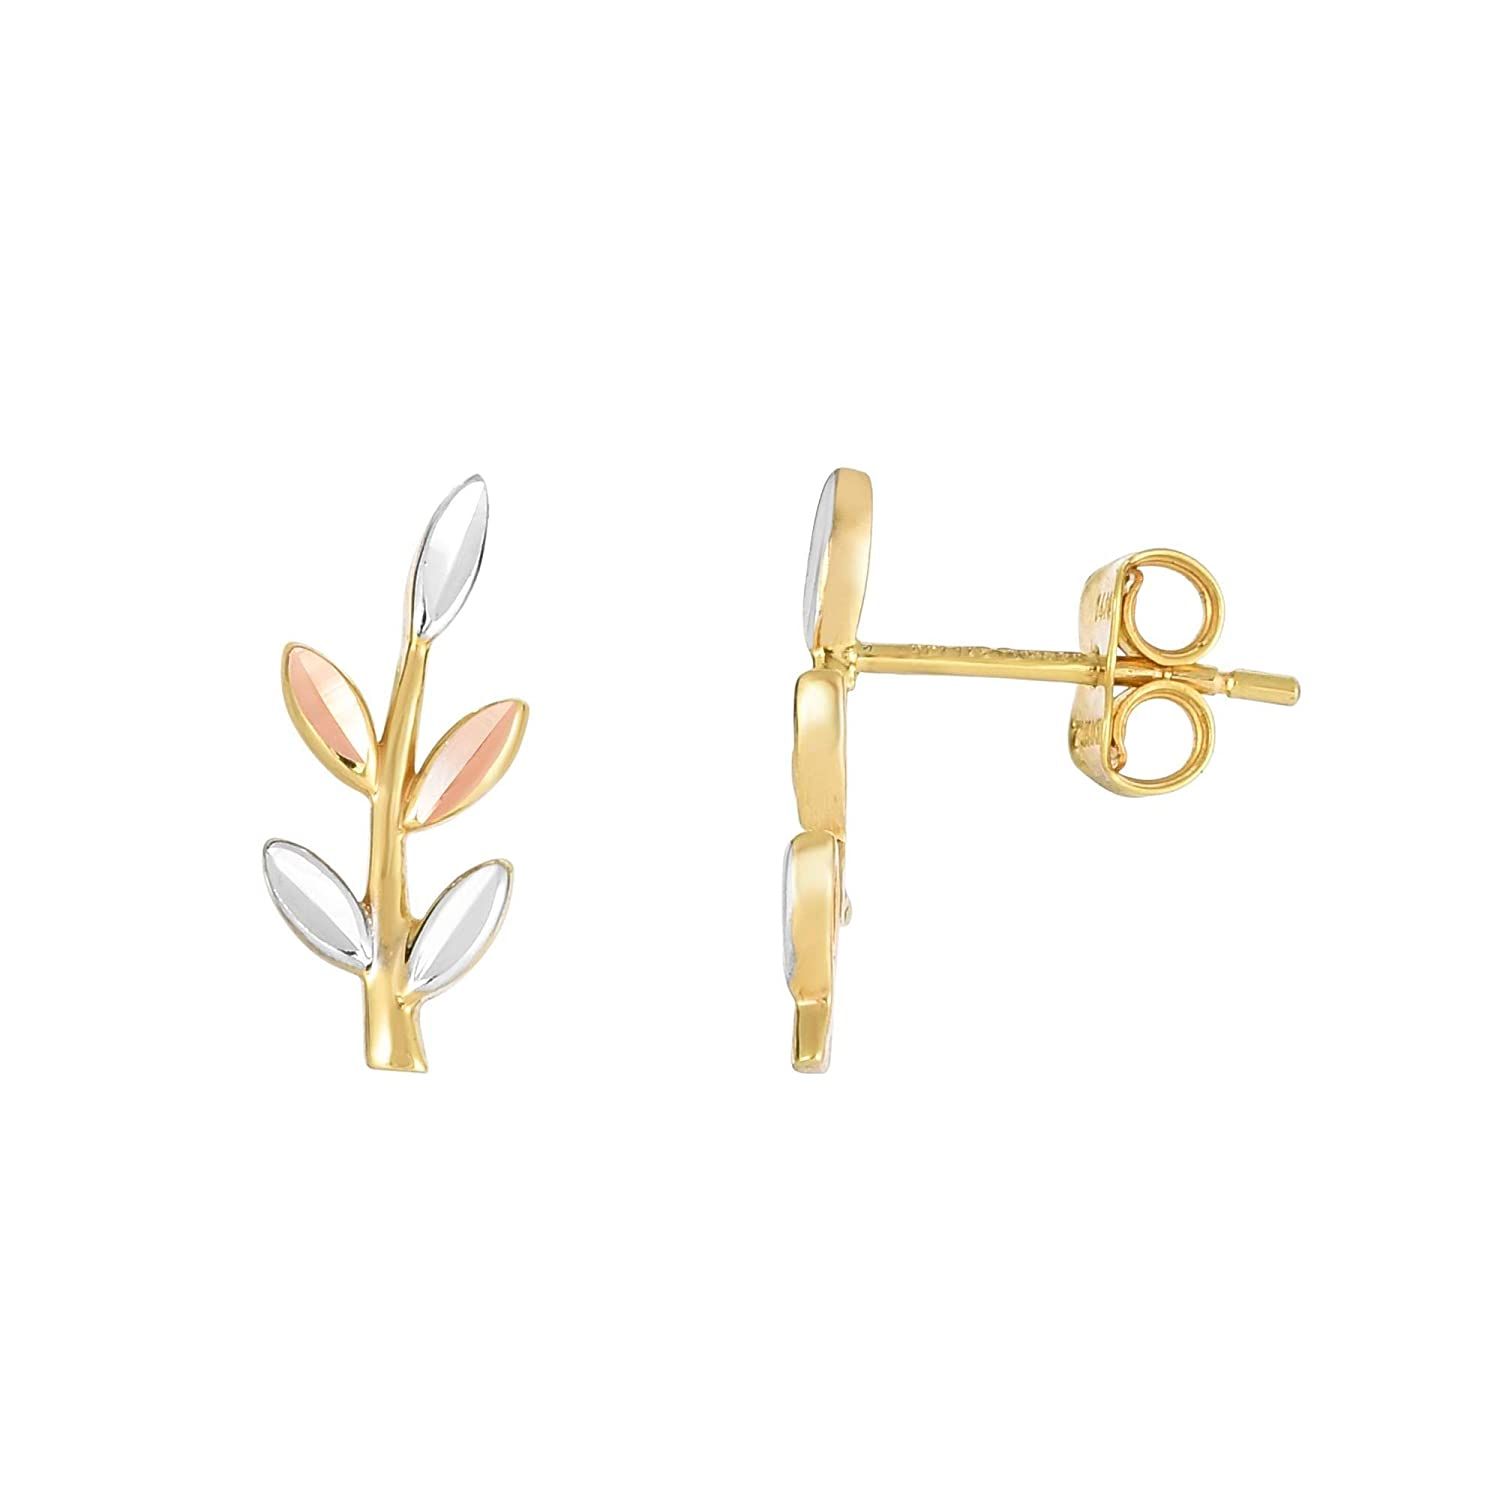 14K Yellow Rose /& White Gold 16x6mm Diamond Cut Tri-Color 5 Leaf Ear Climber Push Back by IcedTime